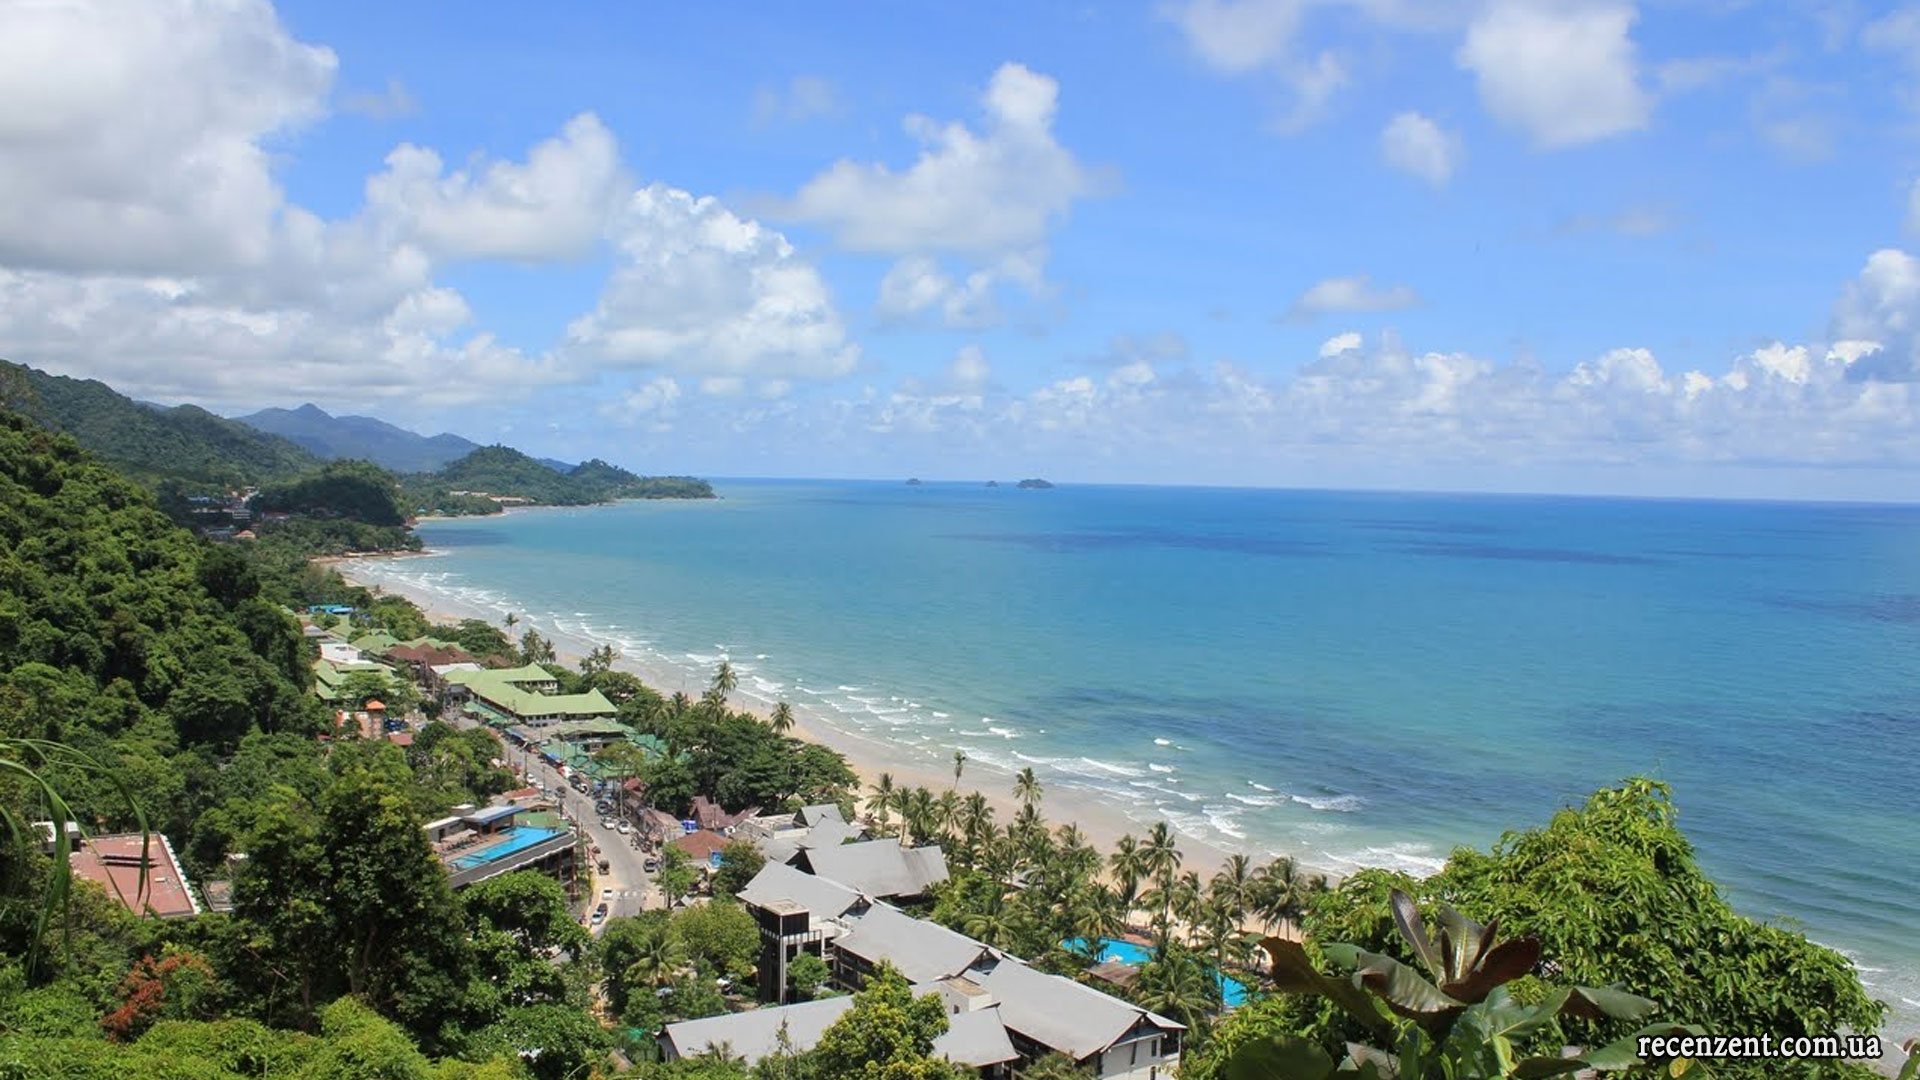 008-thailand-koh-chang-review-info-travel-agency-recenzent ...